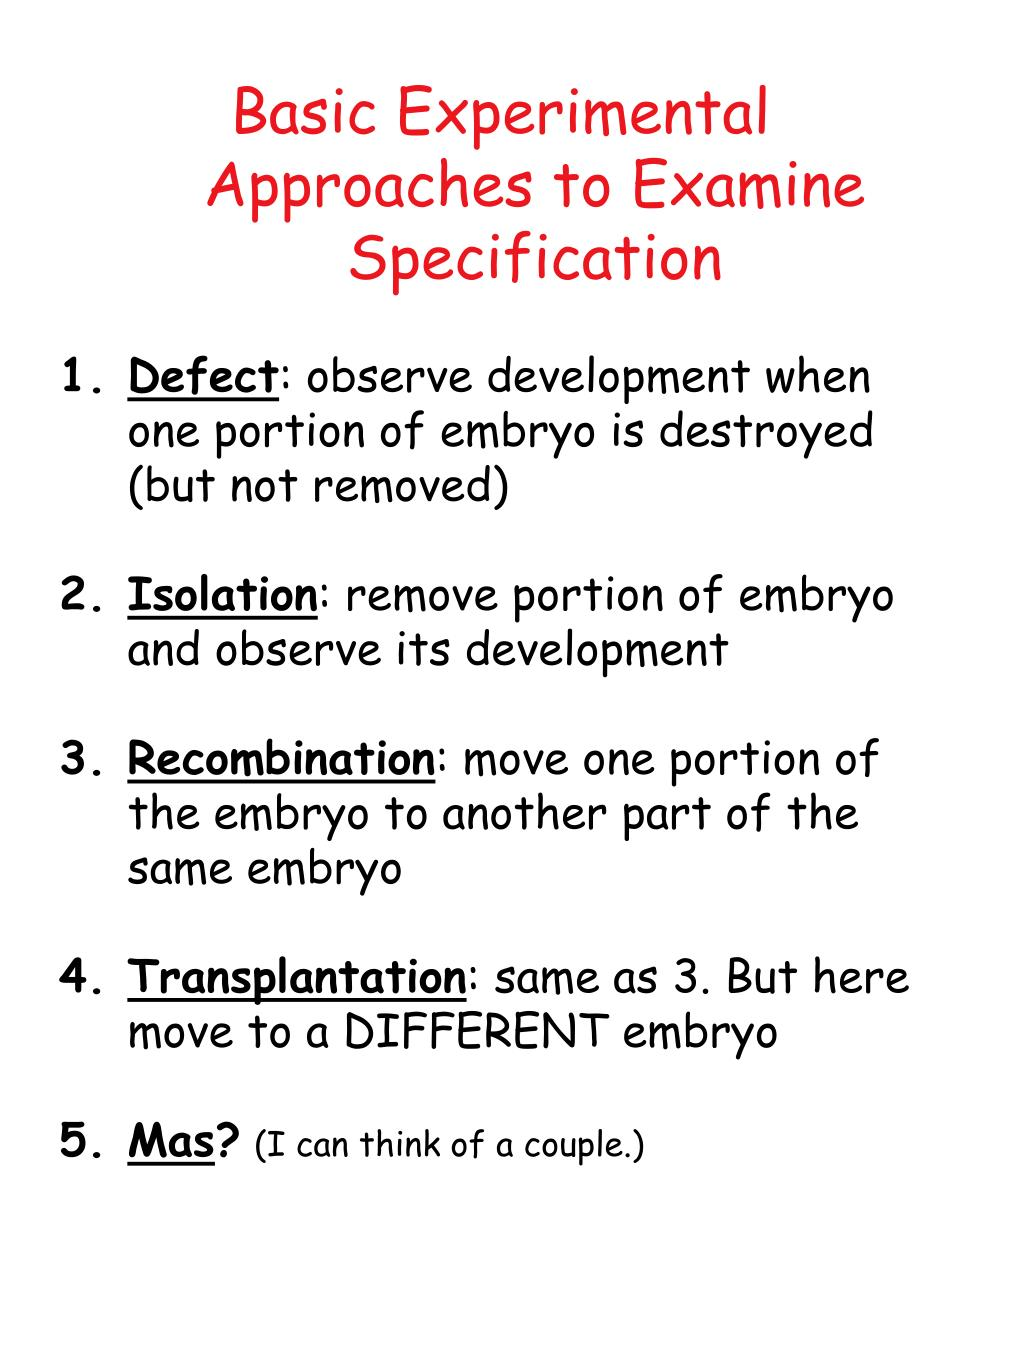 Basic Experimental Approaches to Examine Specification